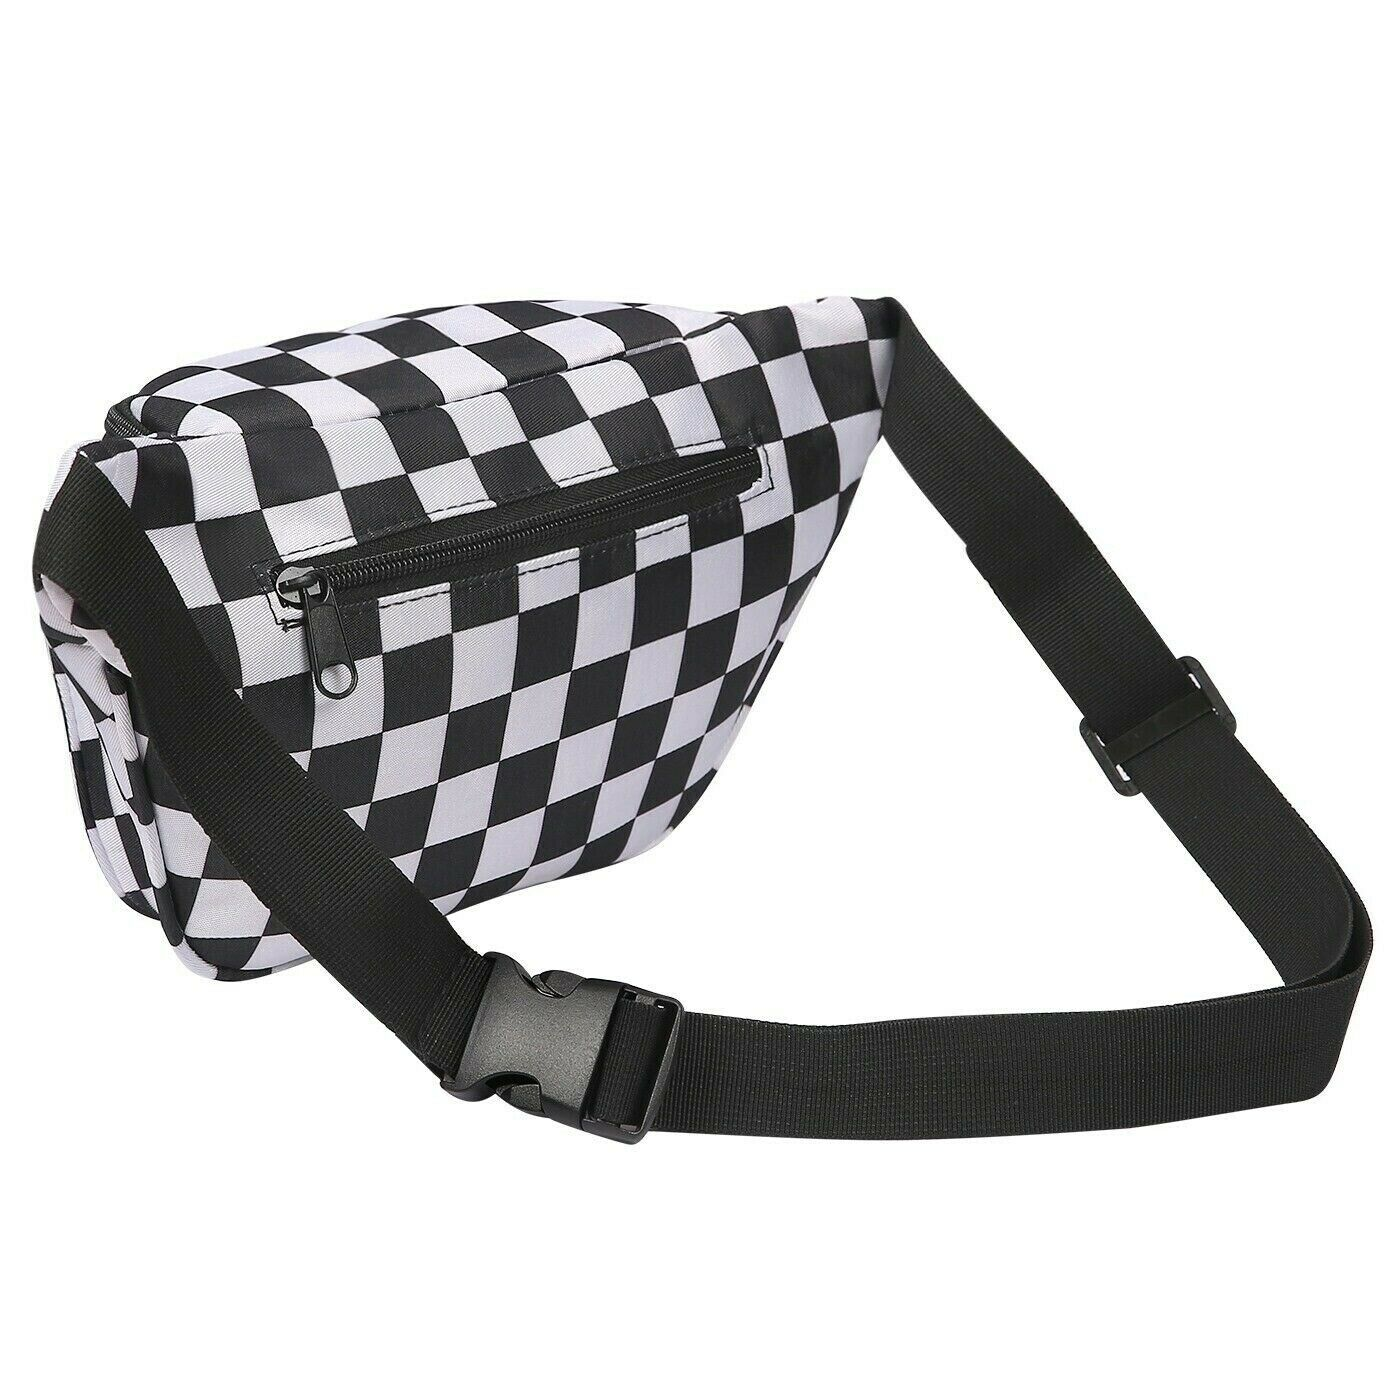 Fanny Pack Festival Outdoor Travel Crossbody Hip Bag Waist Pack